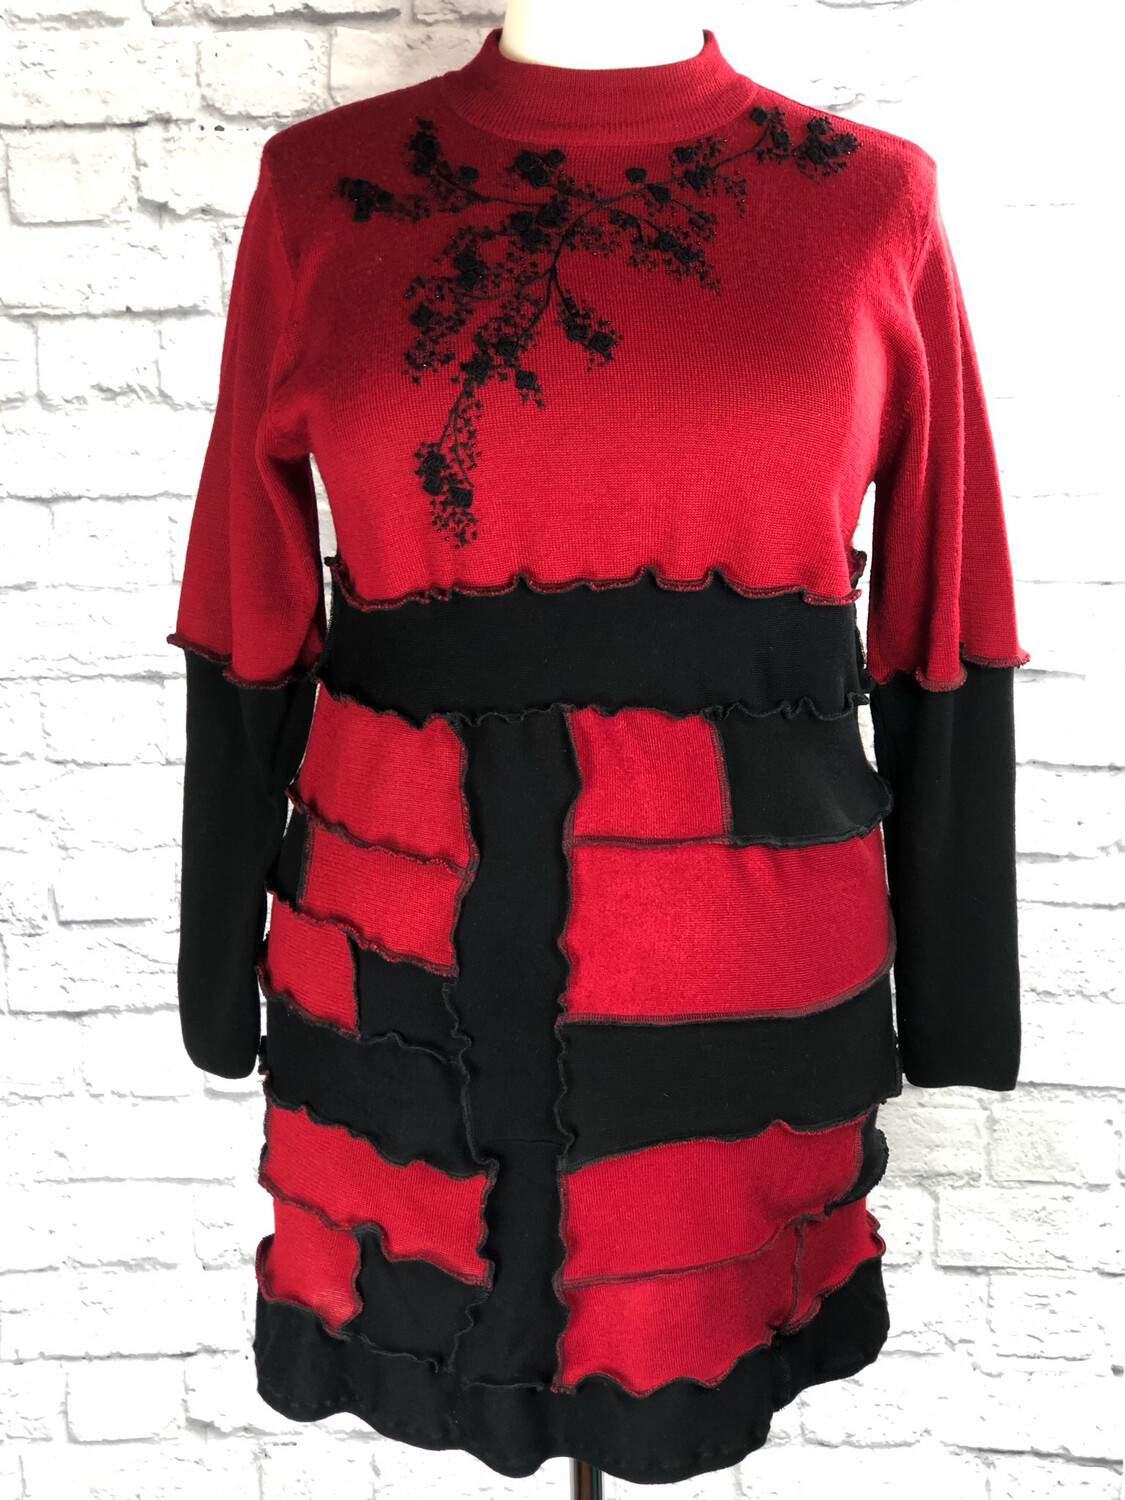 S Threads Upcycled Sweater Dress High Neck Patchwork Roses & Beadwork Size L/XL